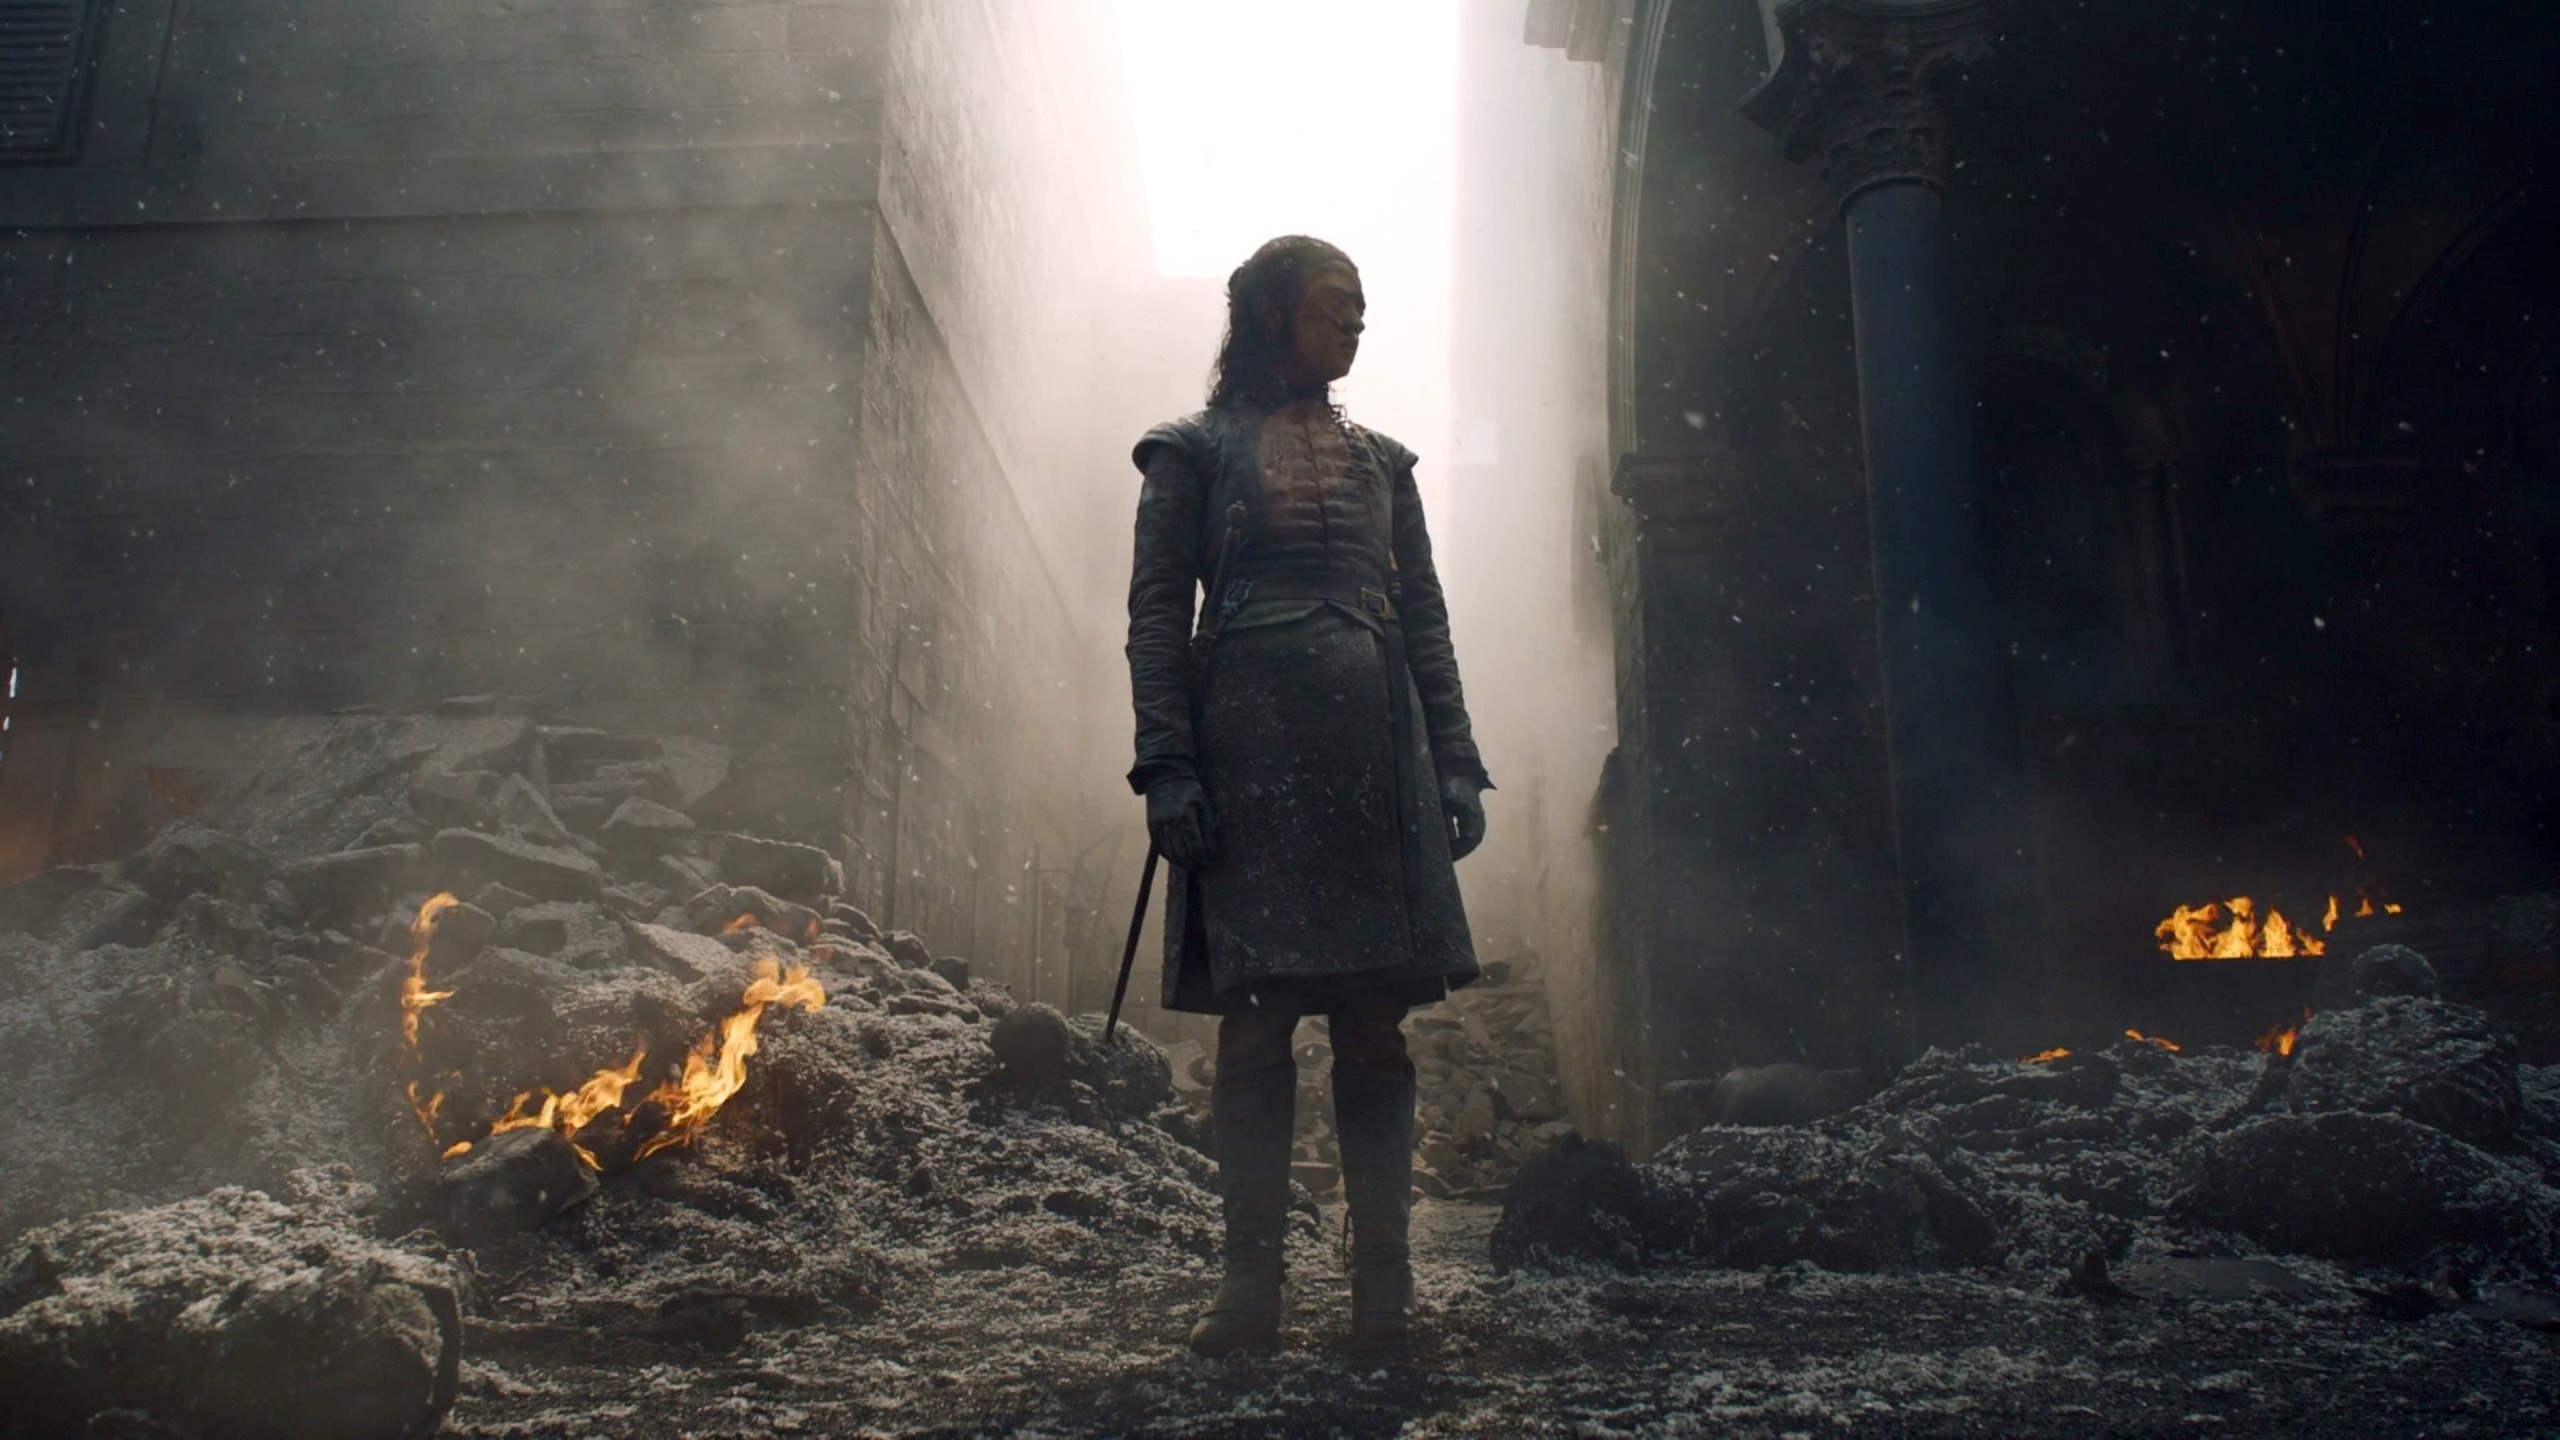 Arya Stark in Game of Thrones 8x05 - The Bells